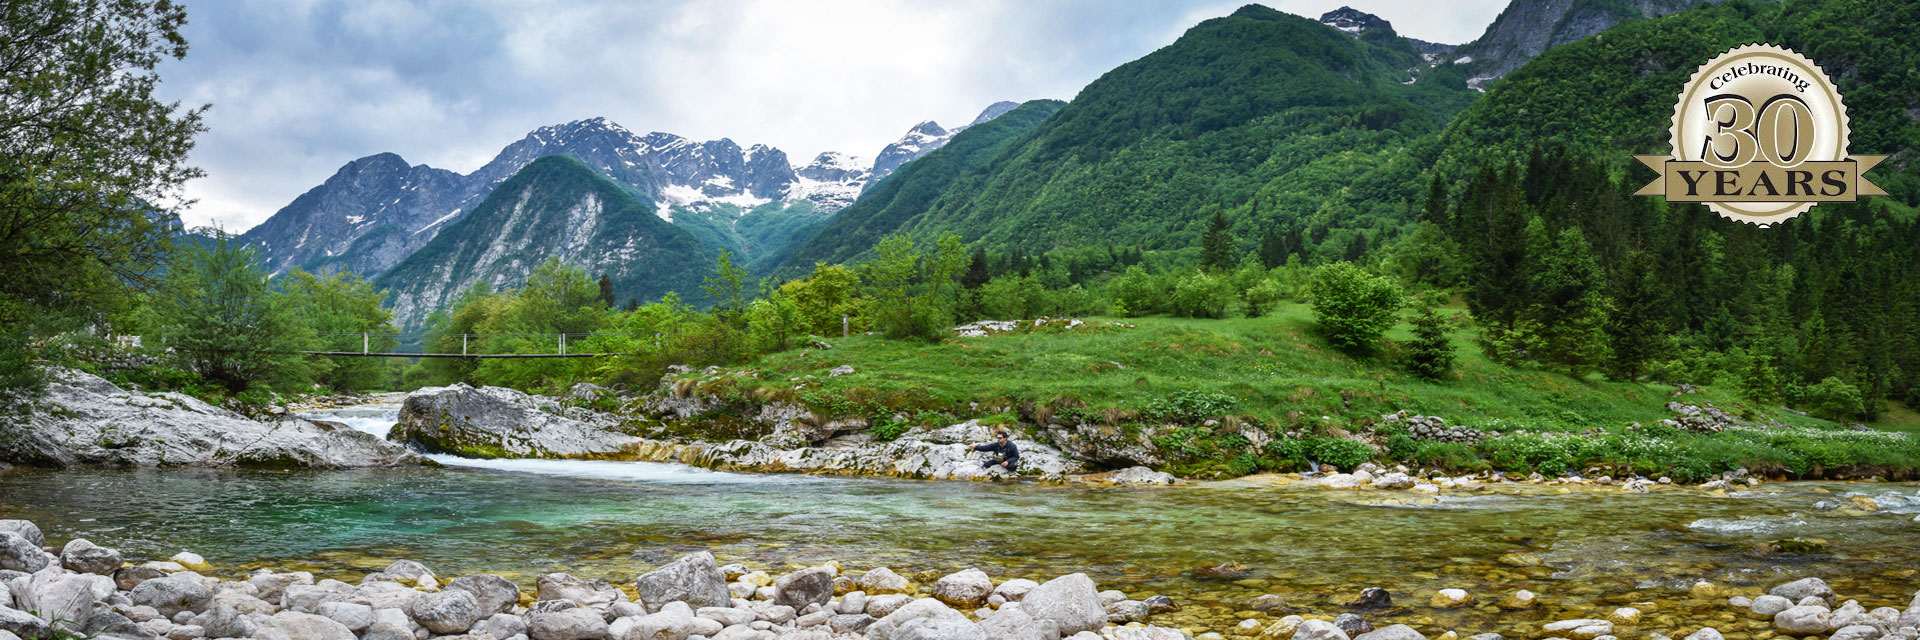 Fly Fishing Slovenia - wonderland